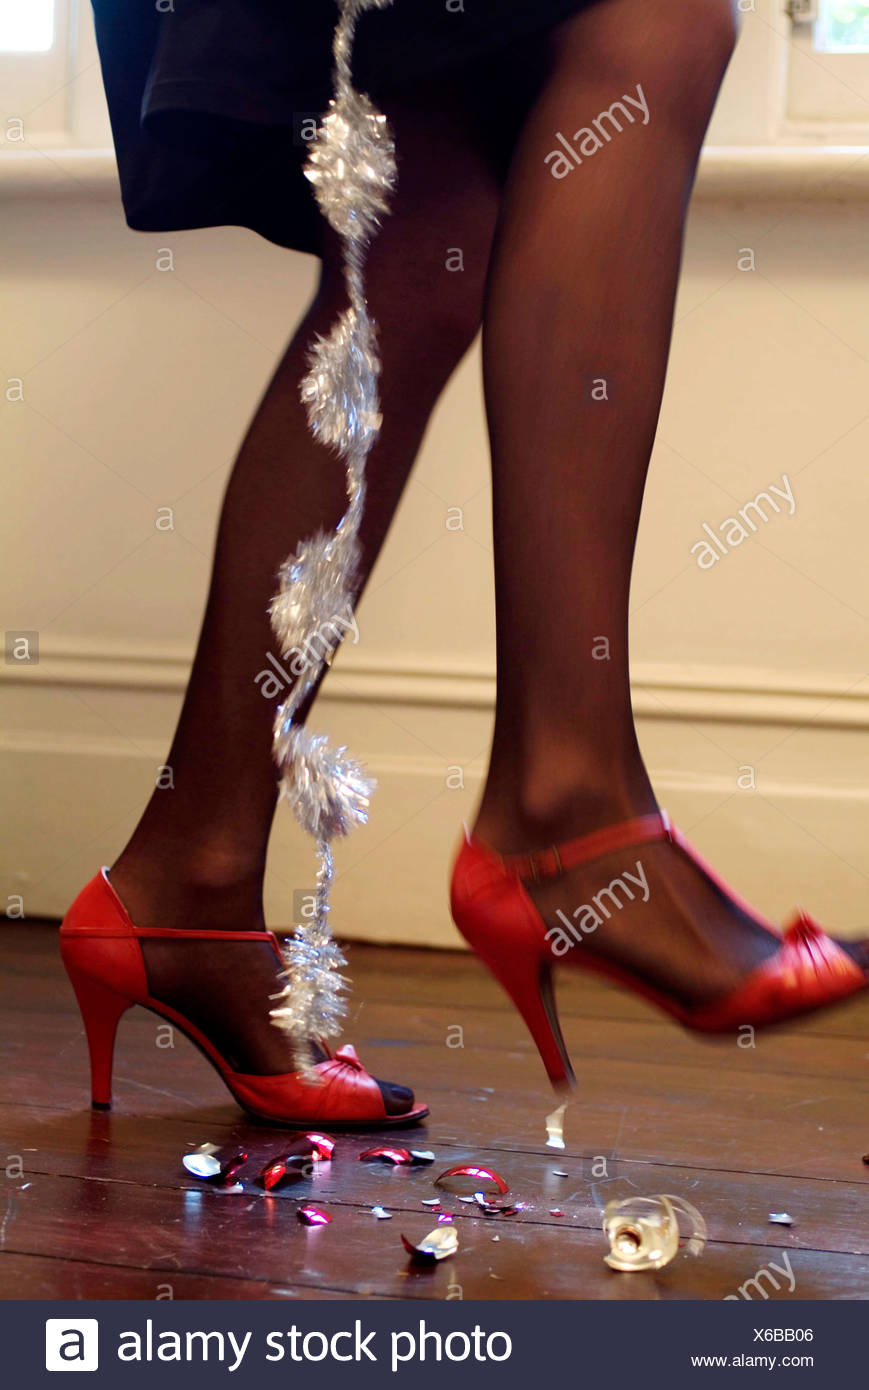 981f0648958e Cropped lower legs of female wearing black tights and red high heeled shoes  strap at ankle